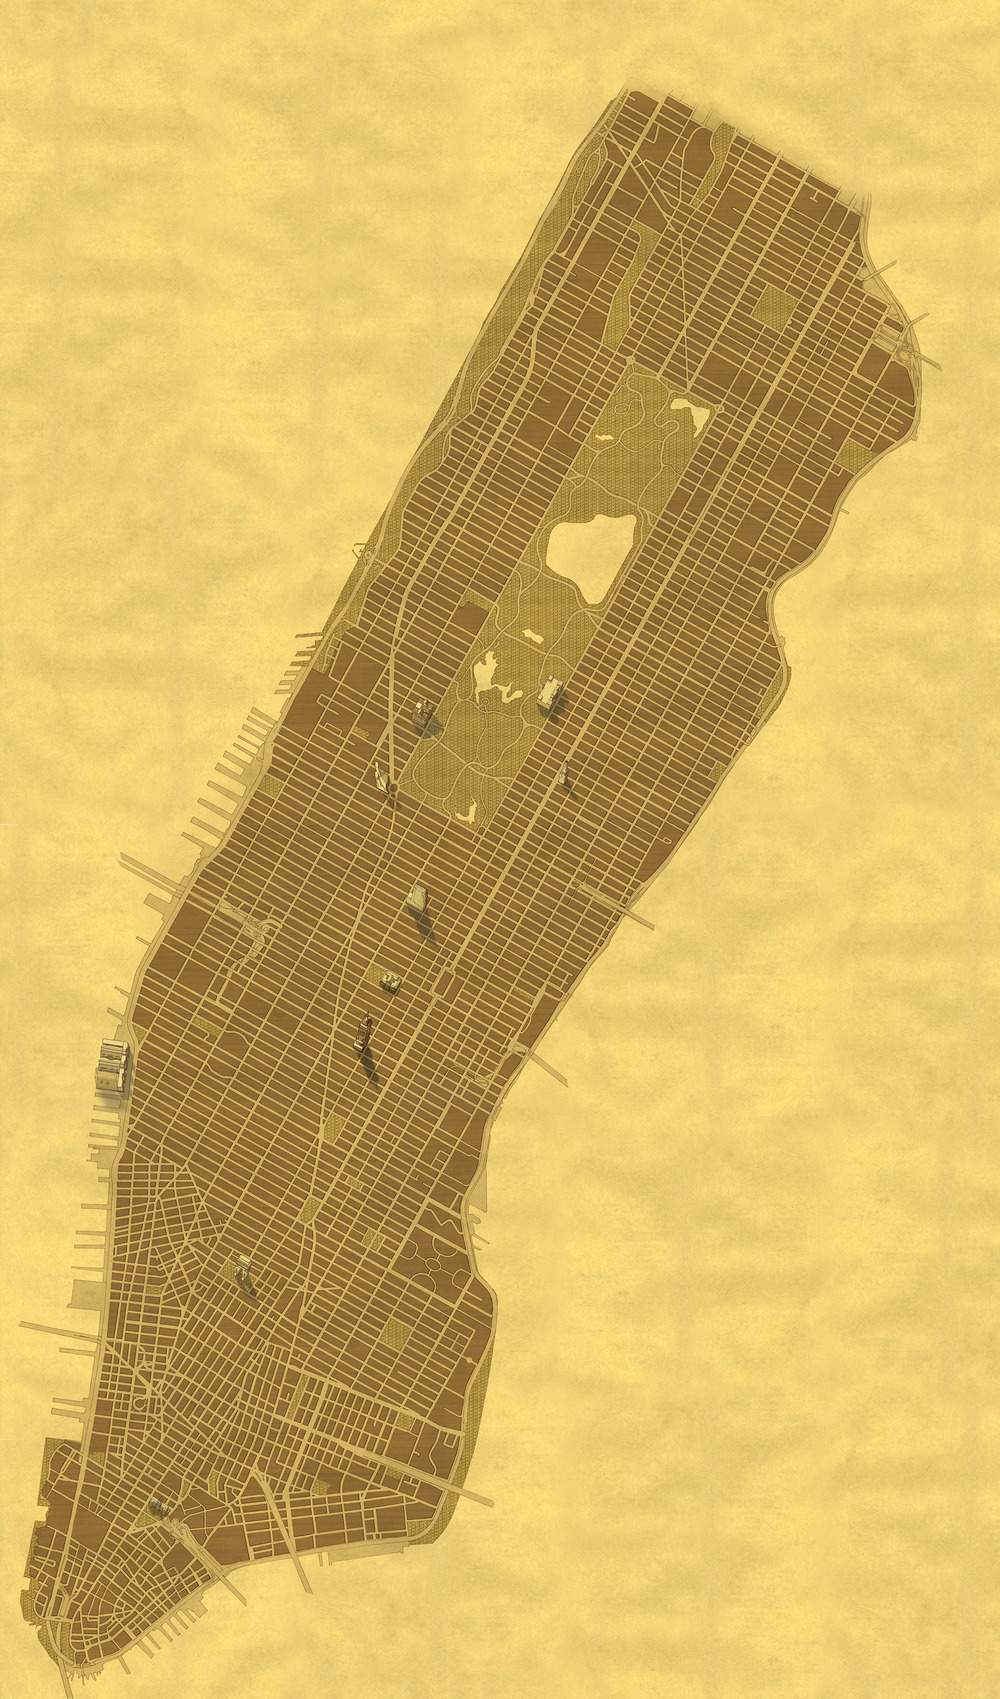 This hand-drawn image  of New York City was designed to overlay the Google Maps API. It was tiled from over one hundred separate drawings. It was designed to look like a 19th century map.